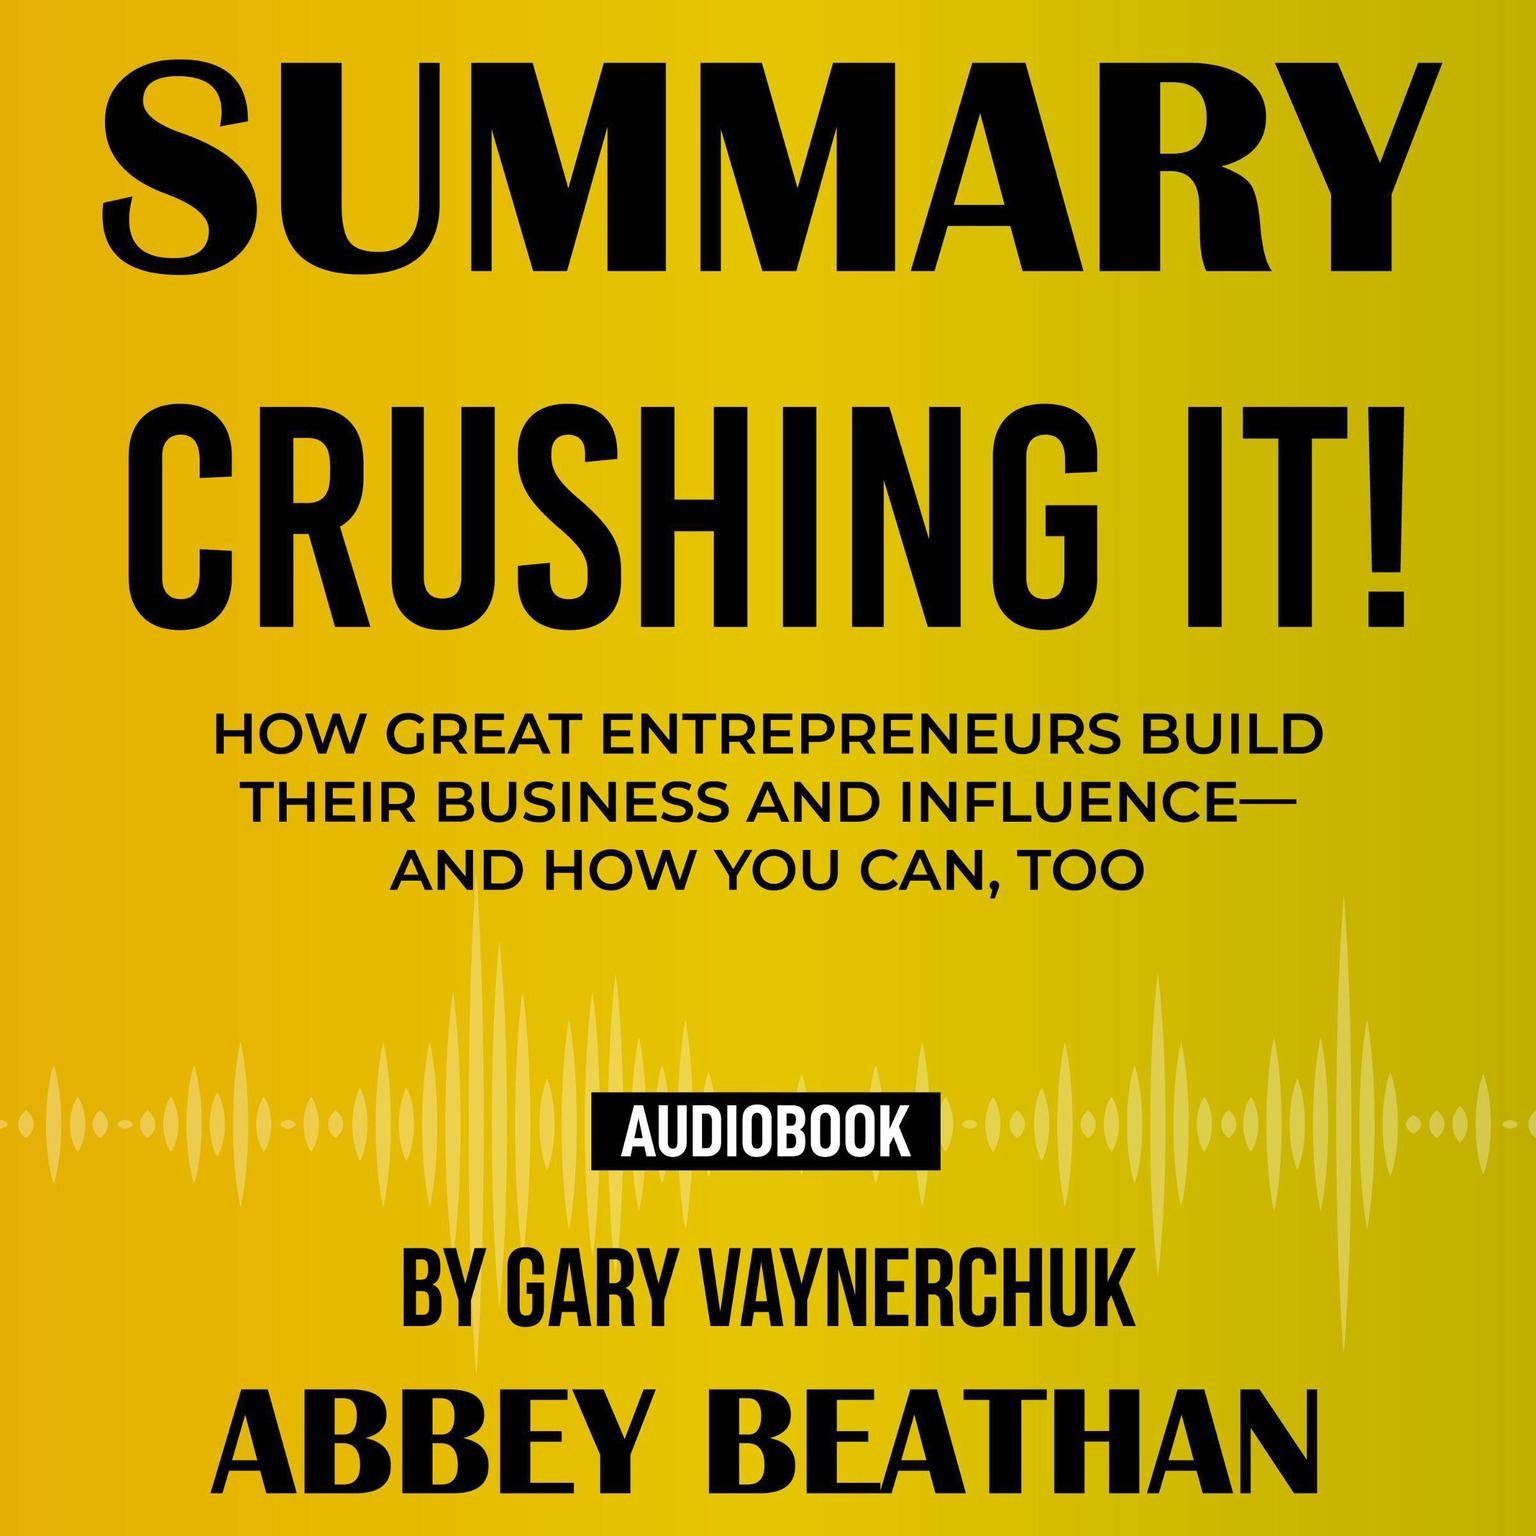 Summary of Crushing It!: How Great Entrepreneurs Build Their Business and Influence—and How You Can, Too by Gary Vaynerchuk Audiobook, by Abbey Beathan